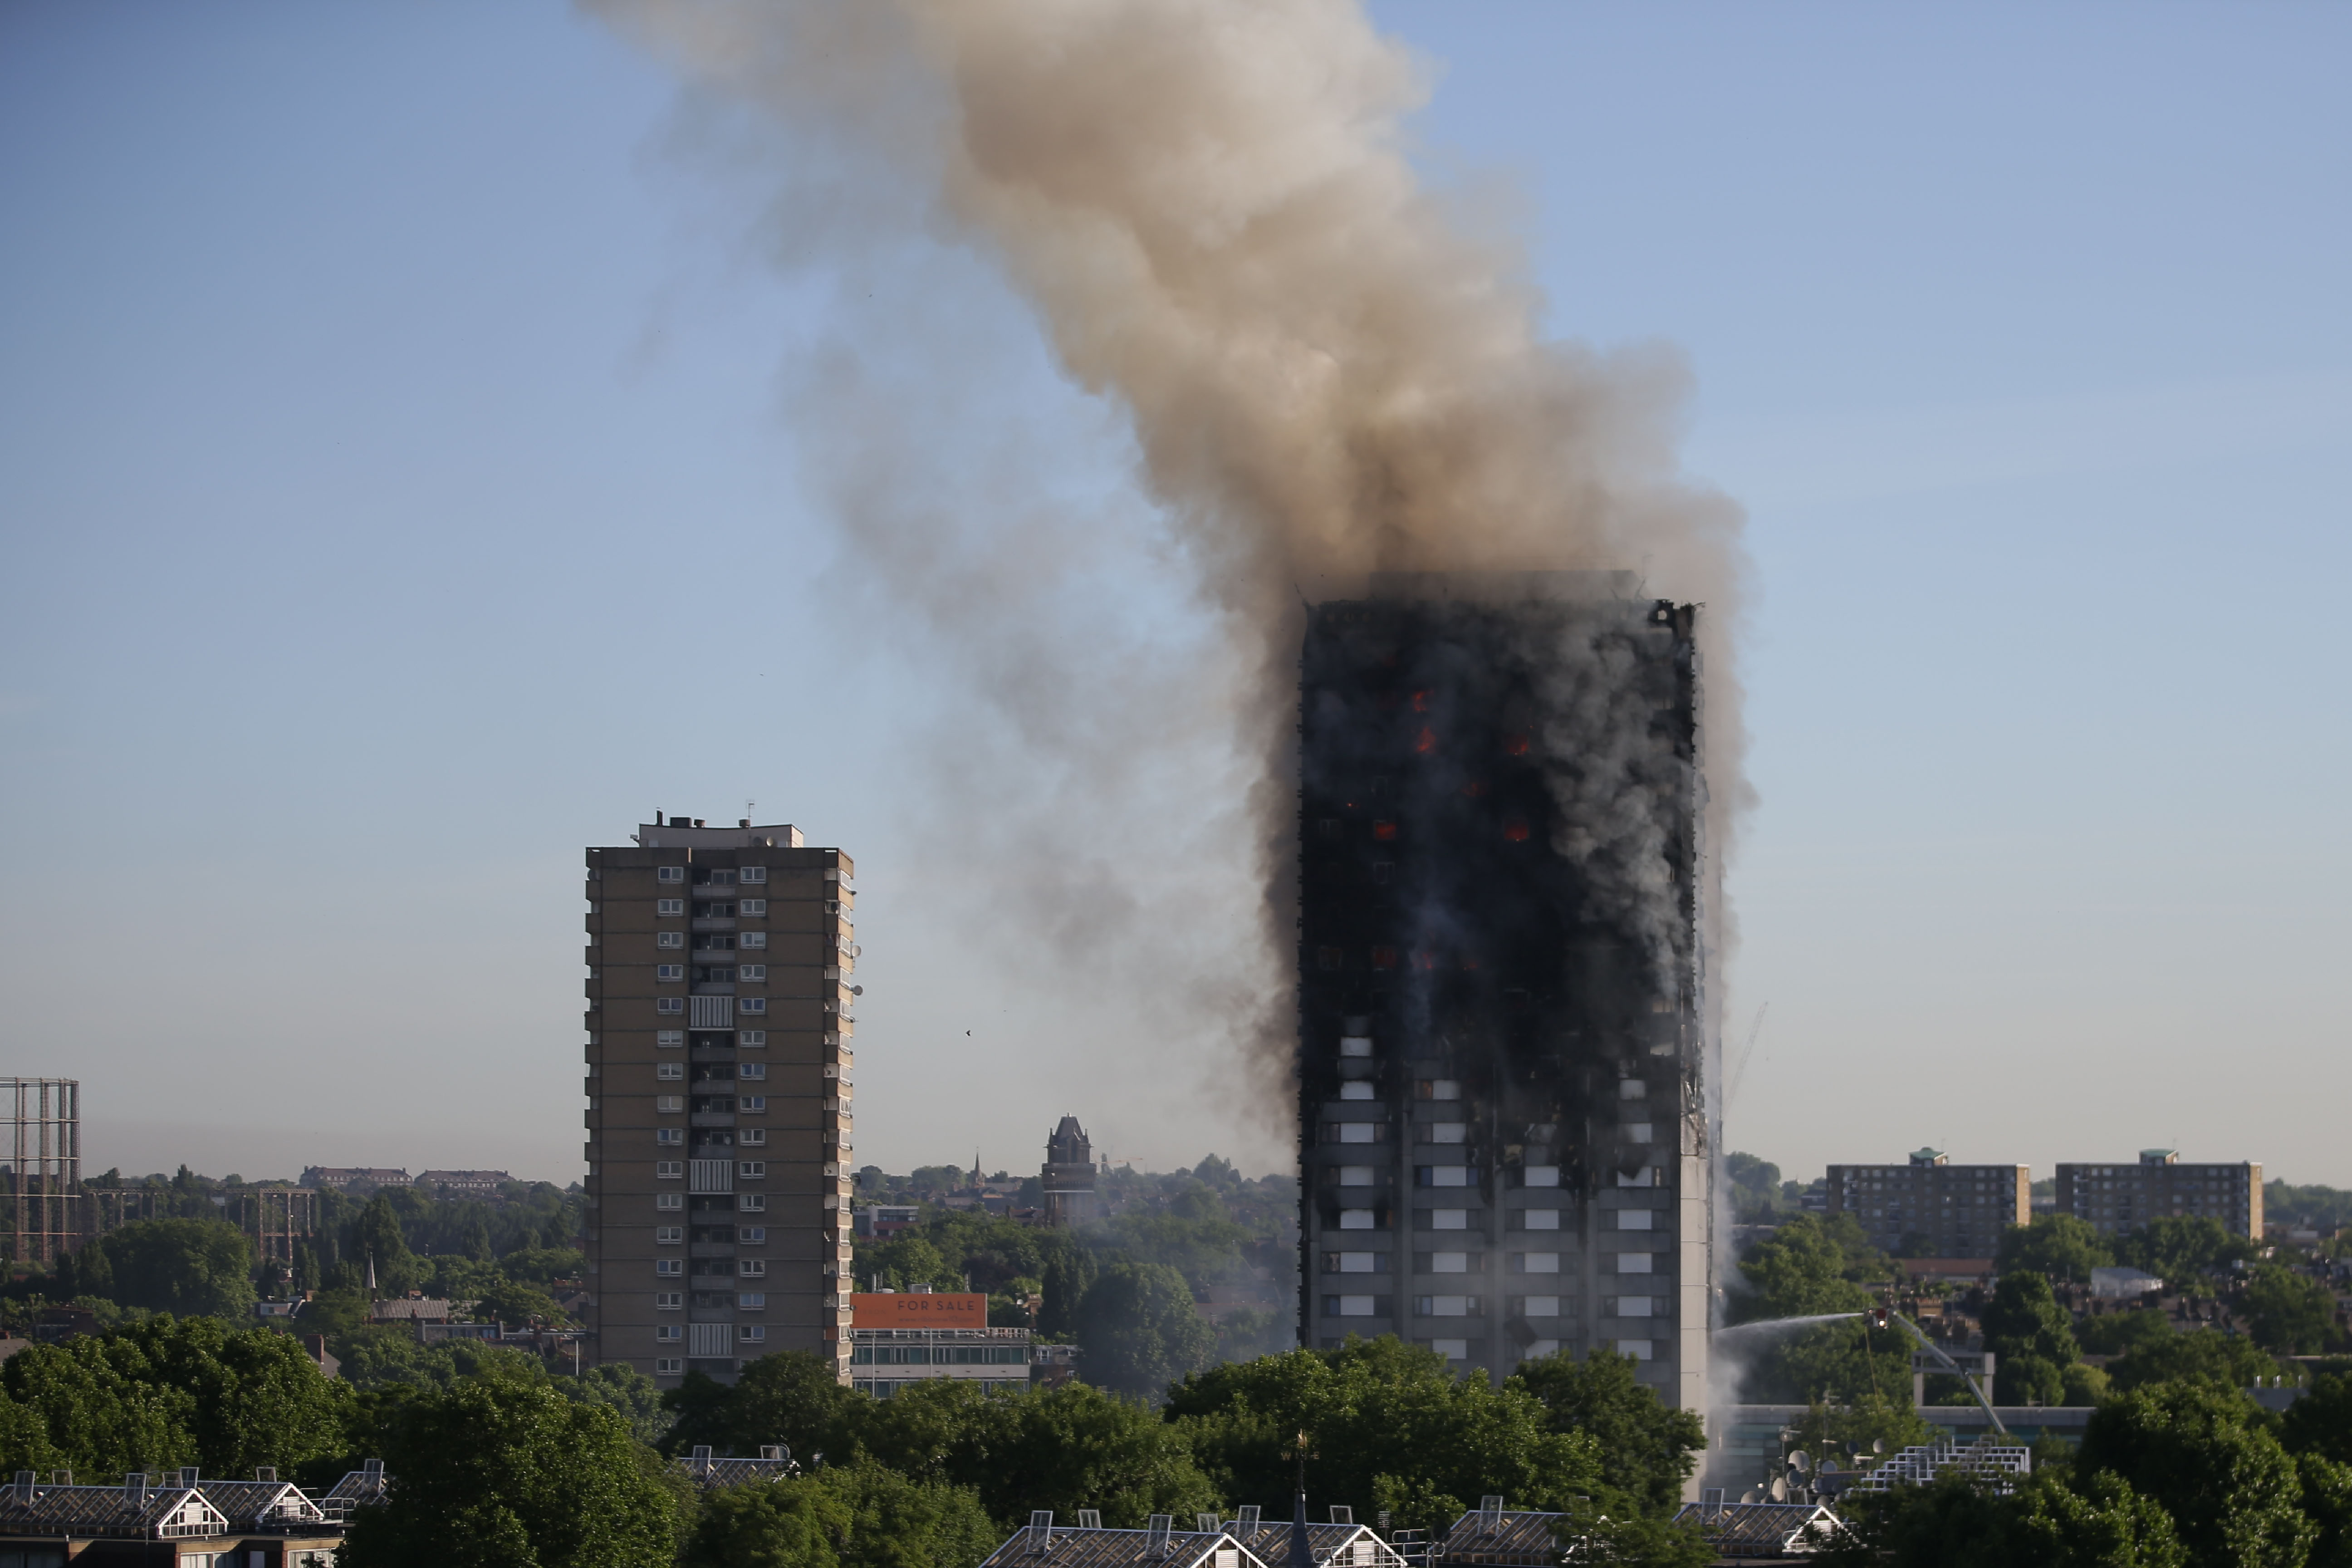 Smoke billows from Grenfell Tower as firefighters attempt to control a huge blaze  in London on June 14, 2017.